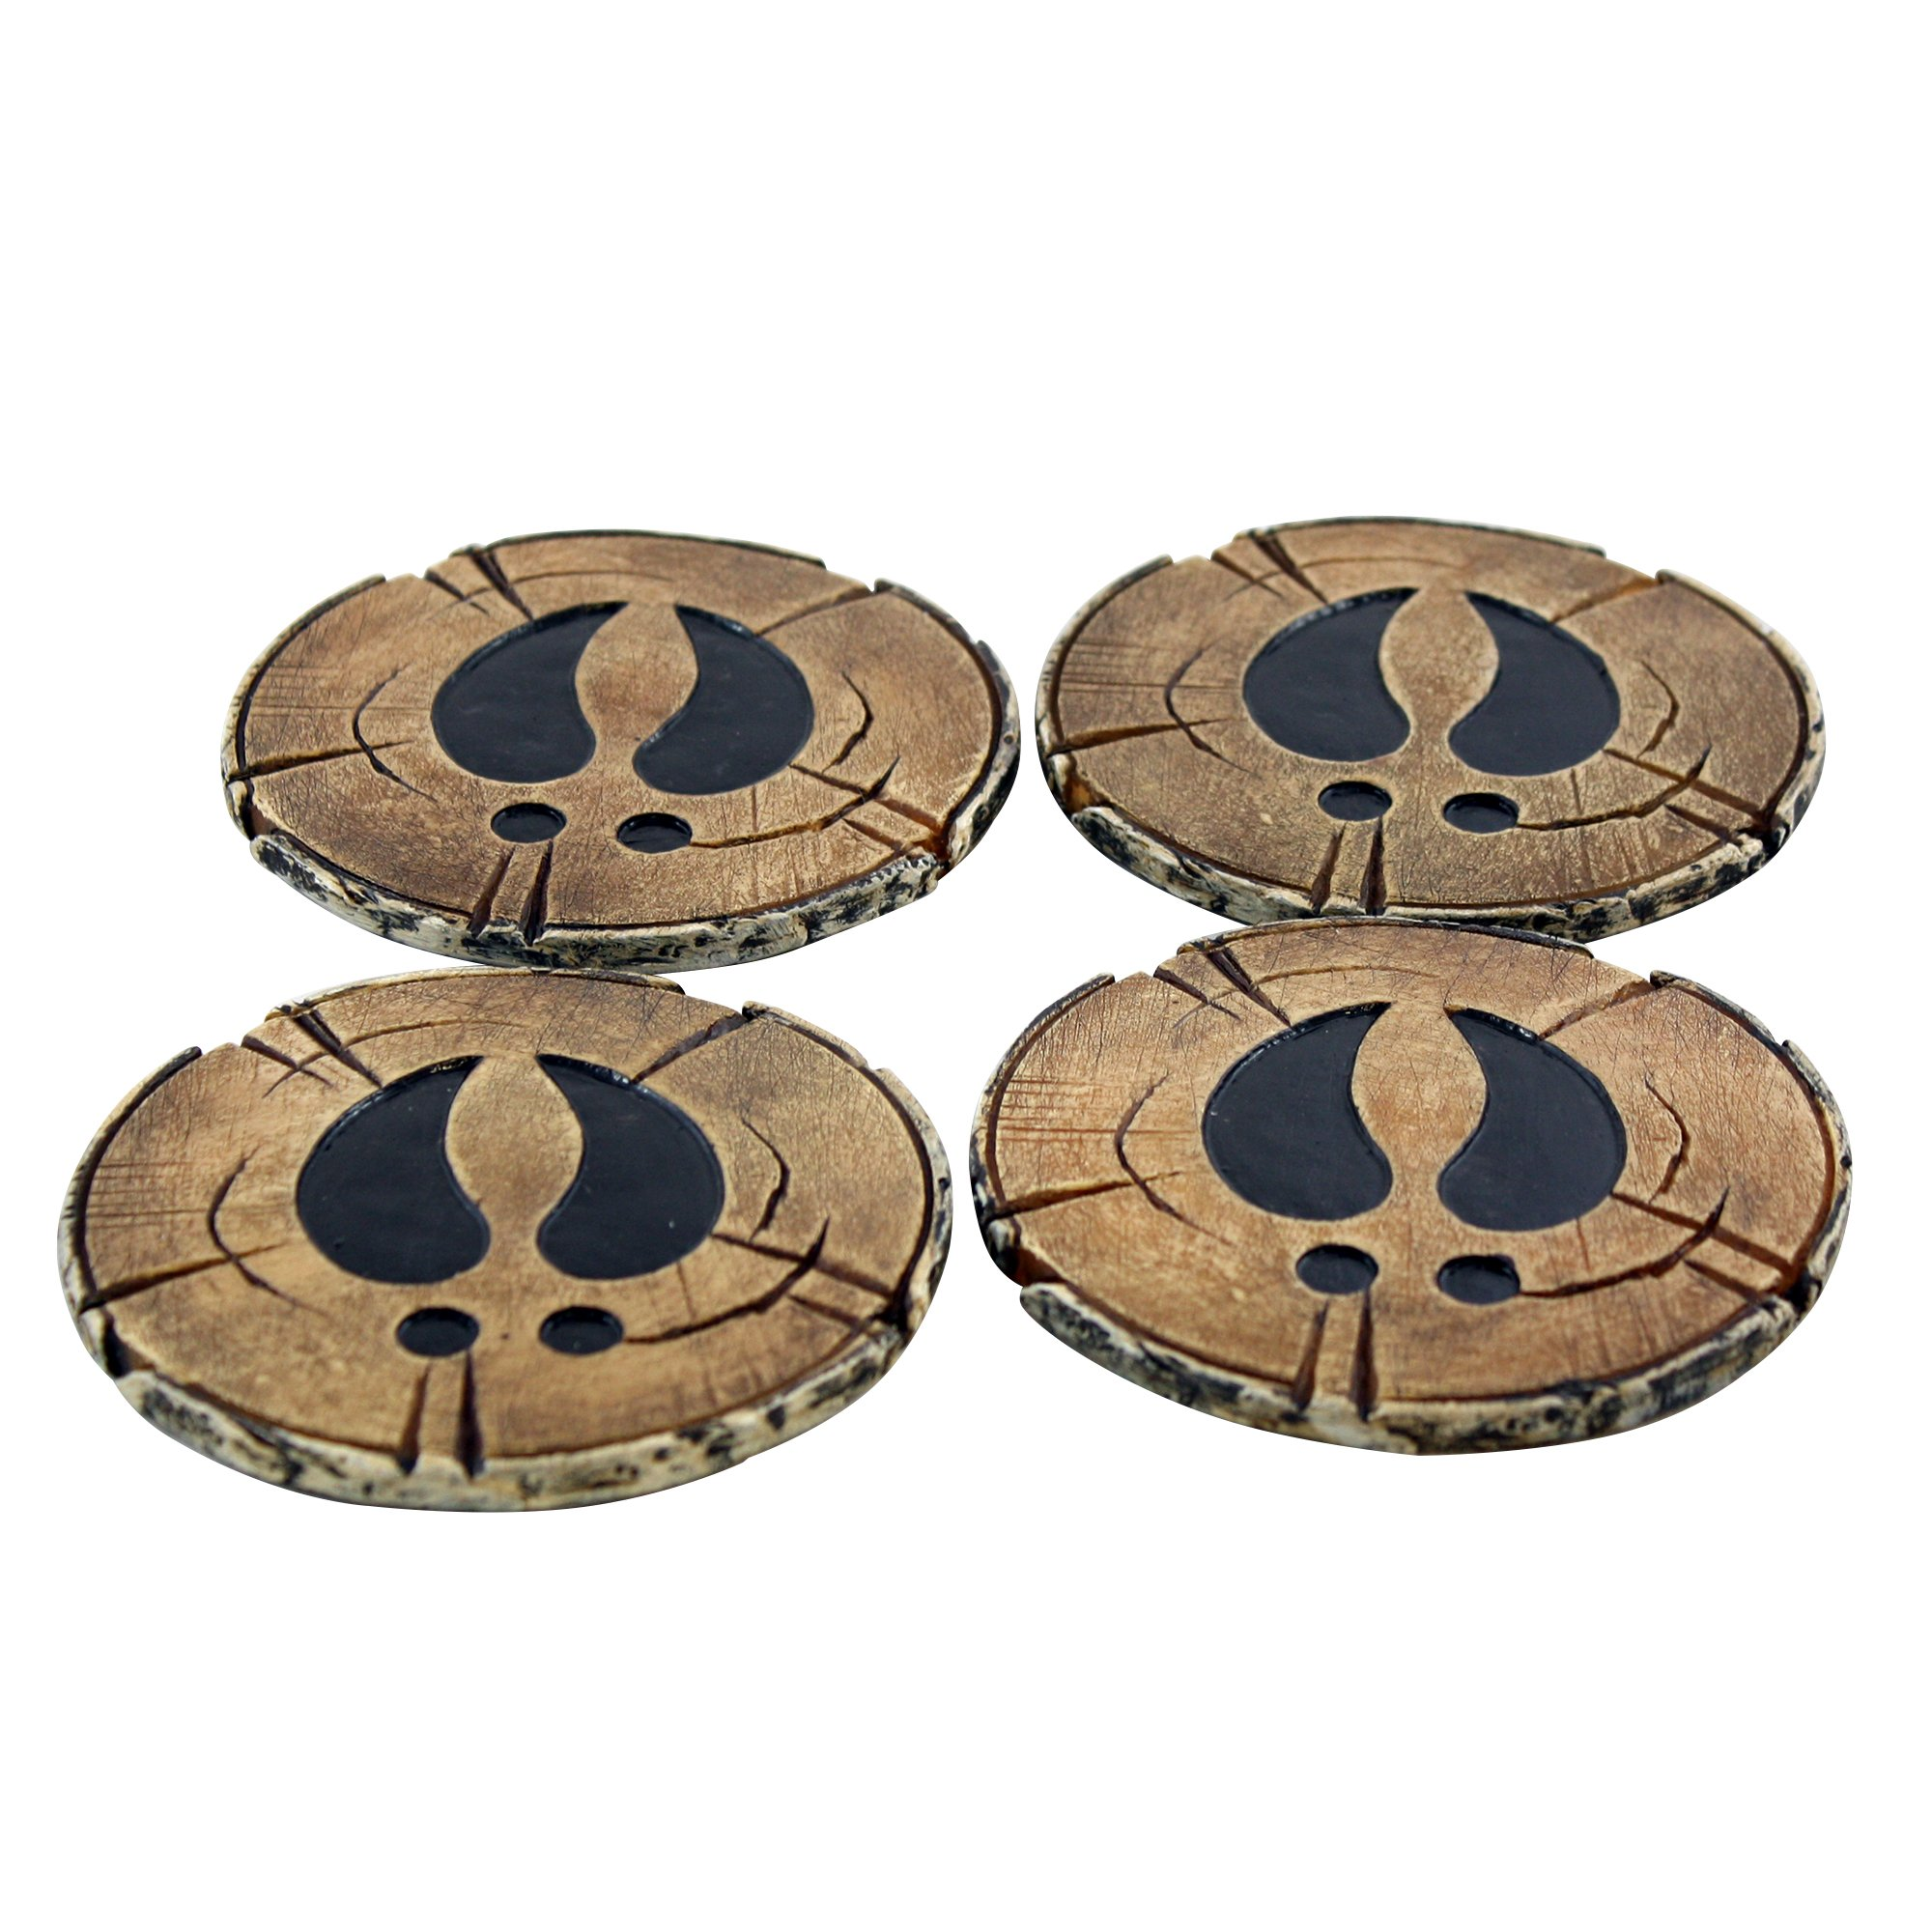 Pine Ridge Old West Deer Antler Drink Coasters Set Of 4 - Home Table Beverage Coaster With Holder - Drink Glass Holder With Outdoors Rustic Cabin Theme Decor by Pine Ridge (Image #8)